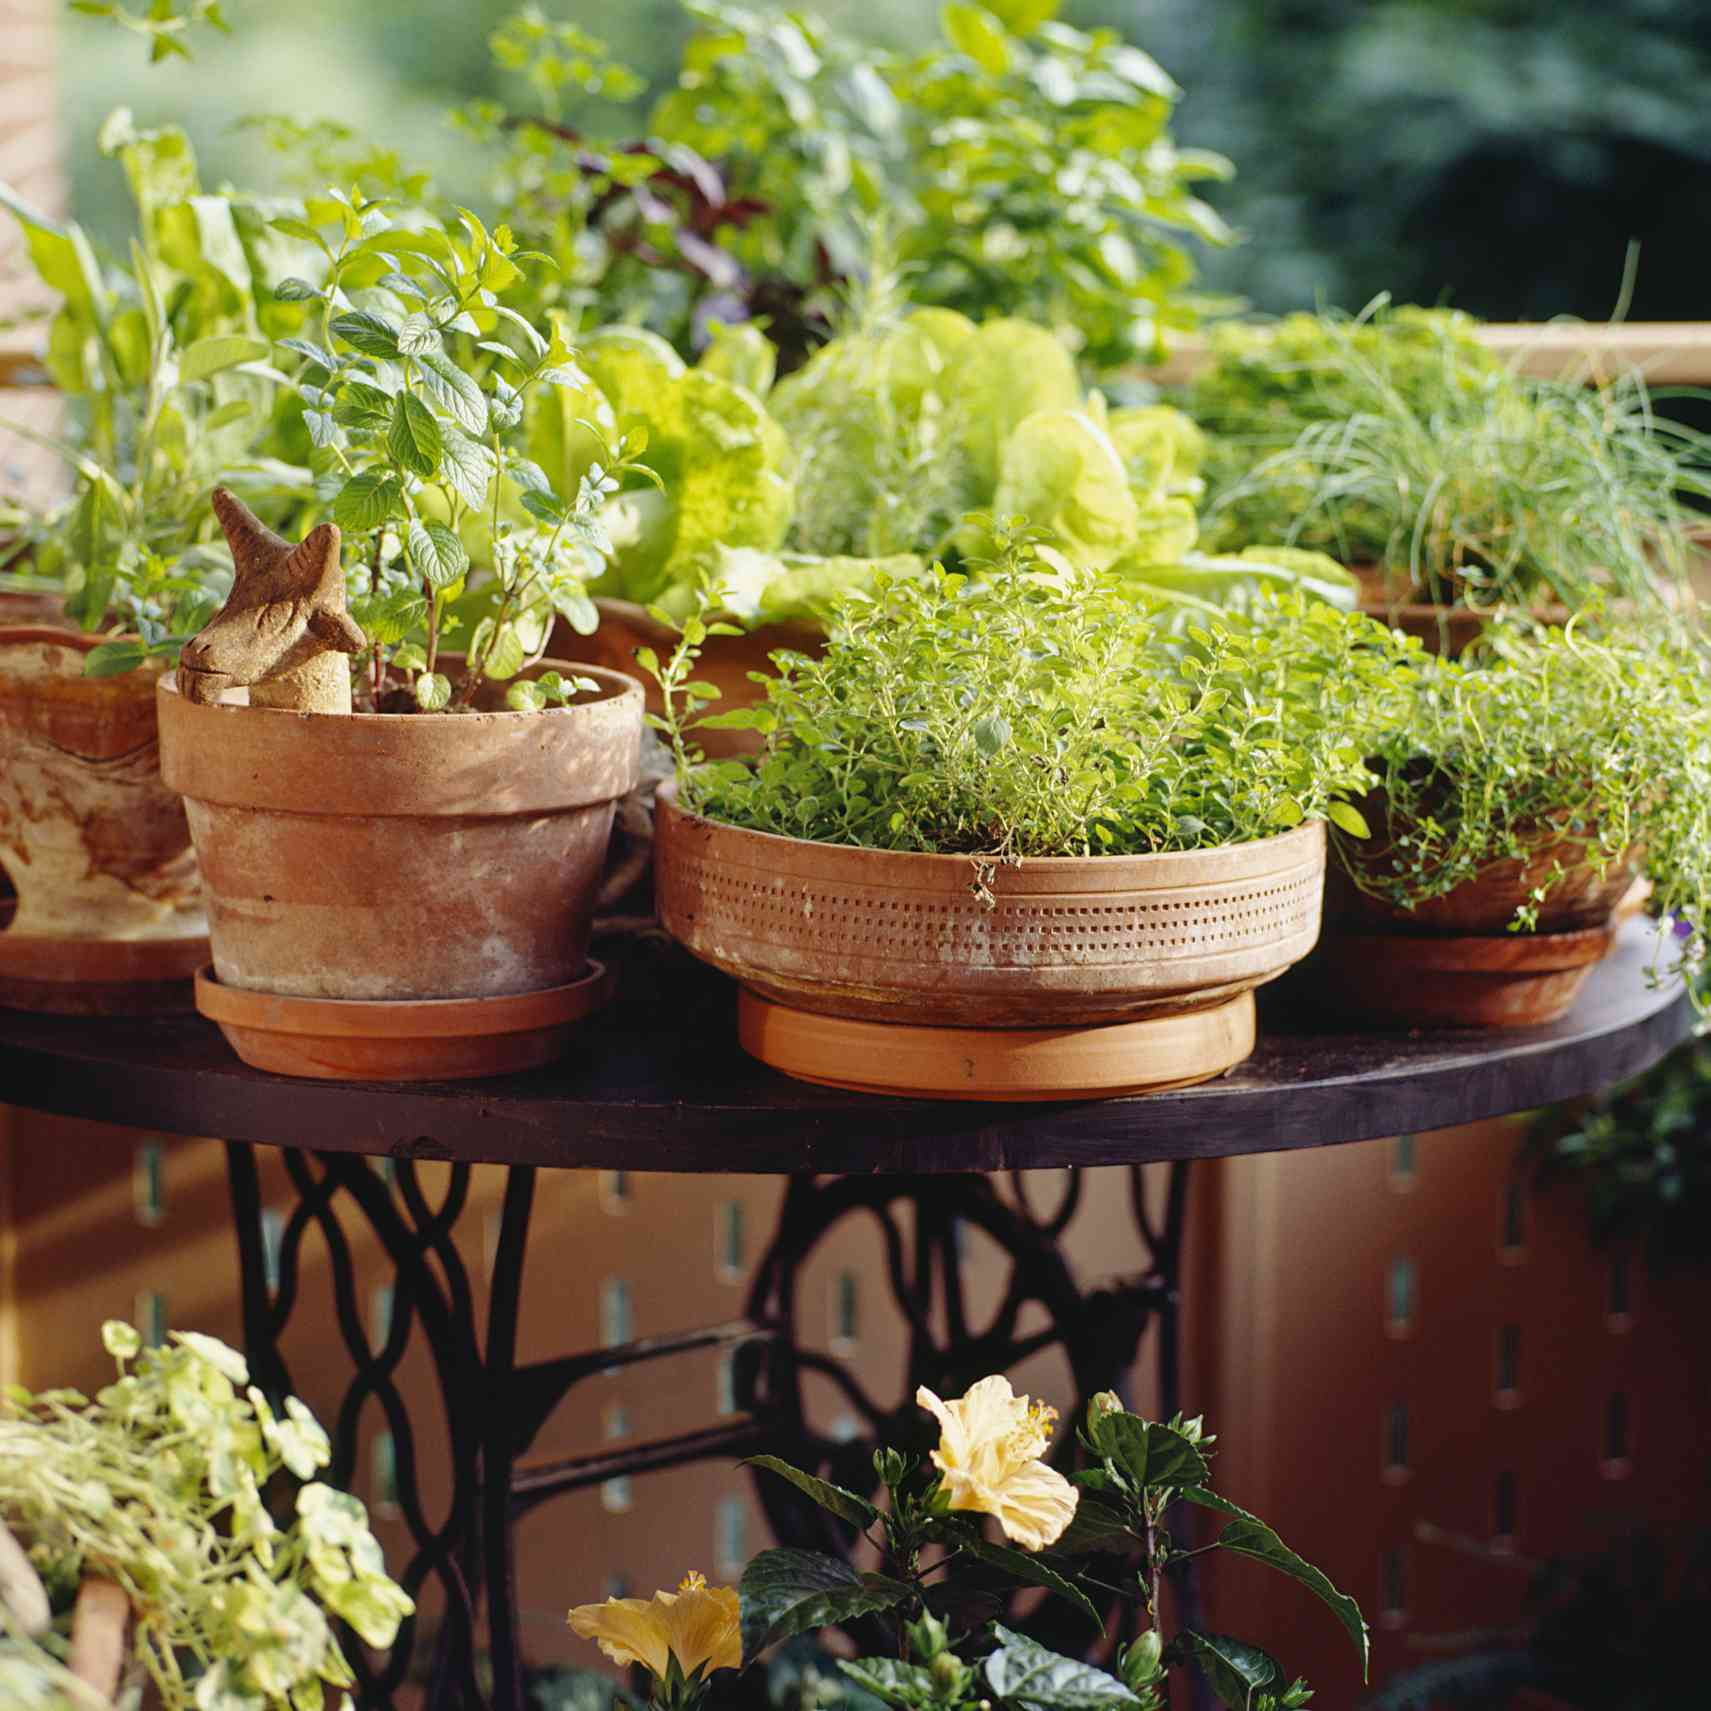 culinary herb plants in terra cotta pots on bistro table on patio